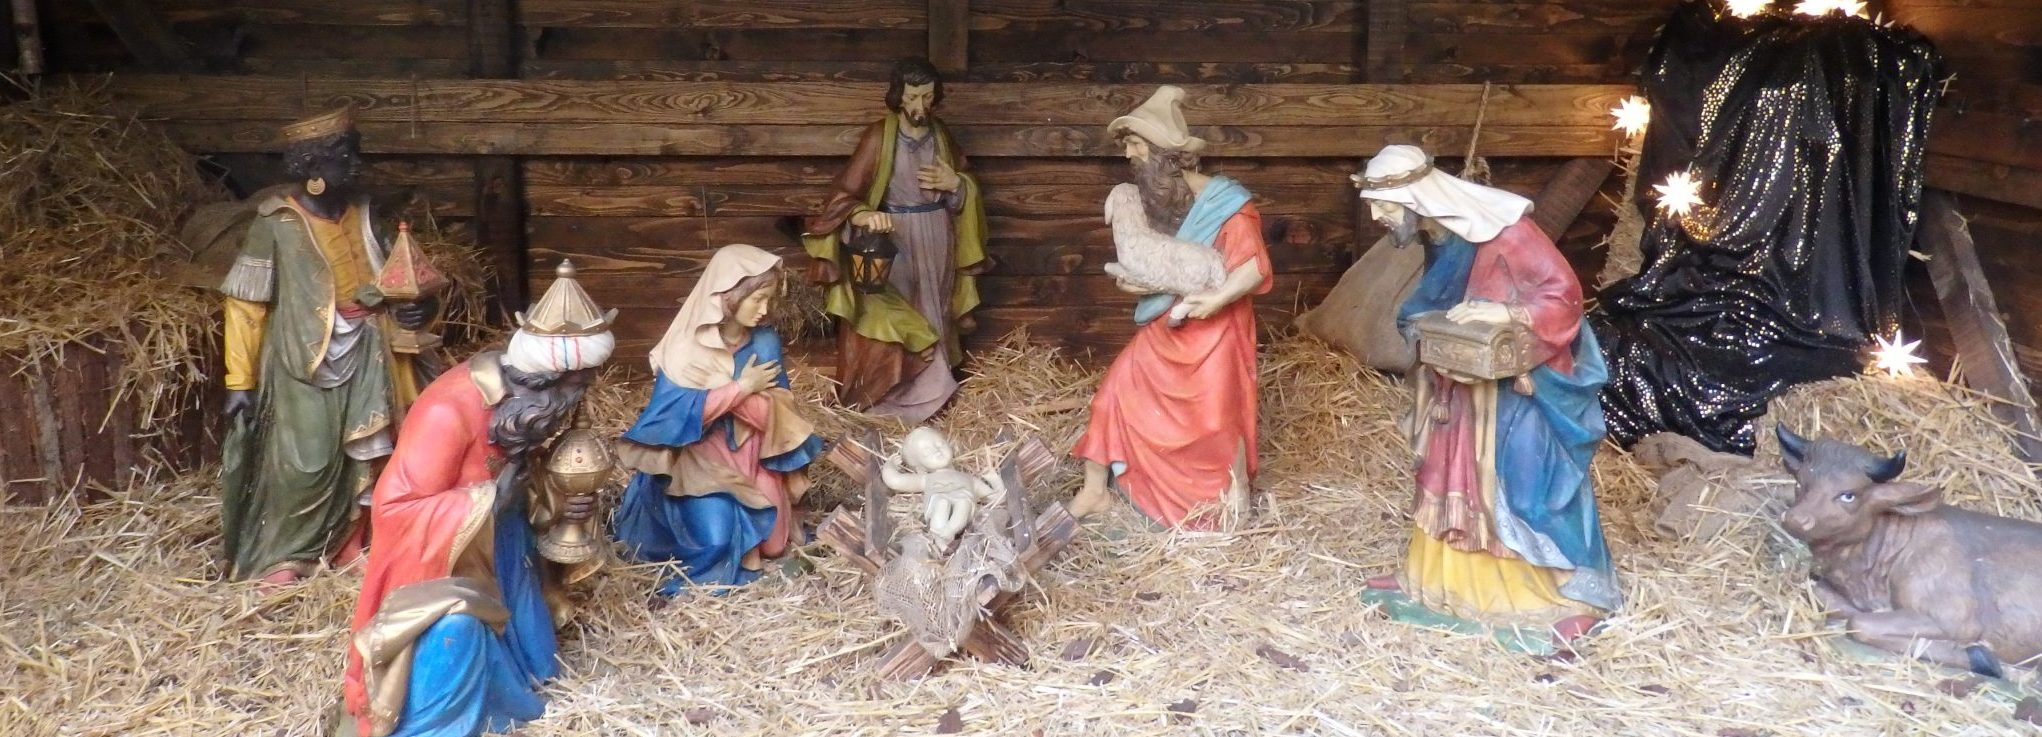 Christmas markets in Germany always include a nativity scene like this one in Oldenburg.